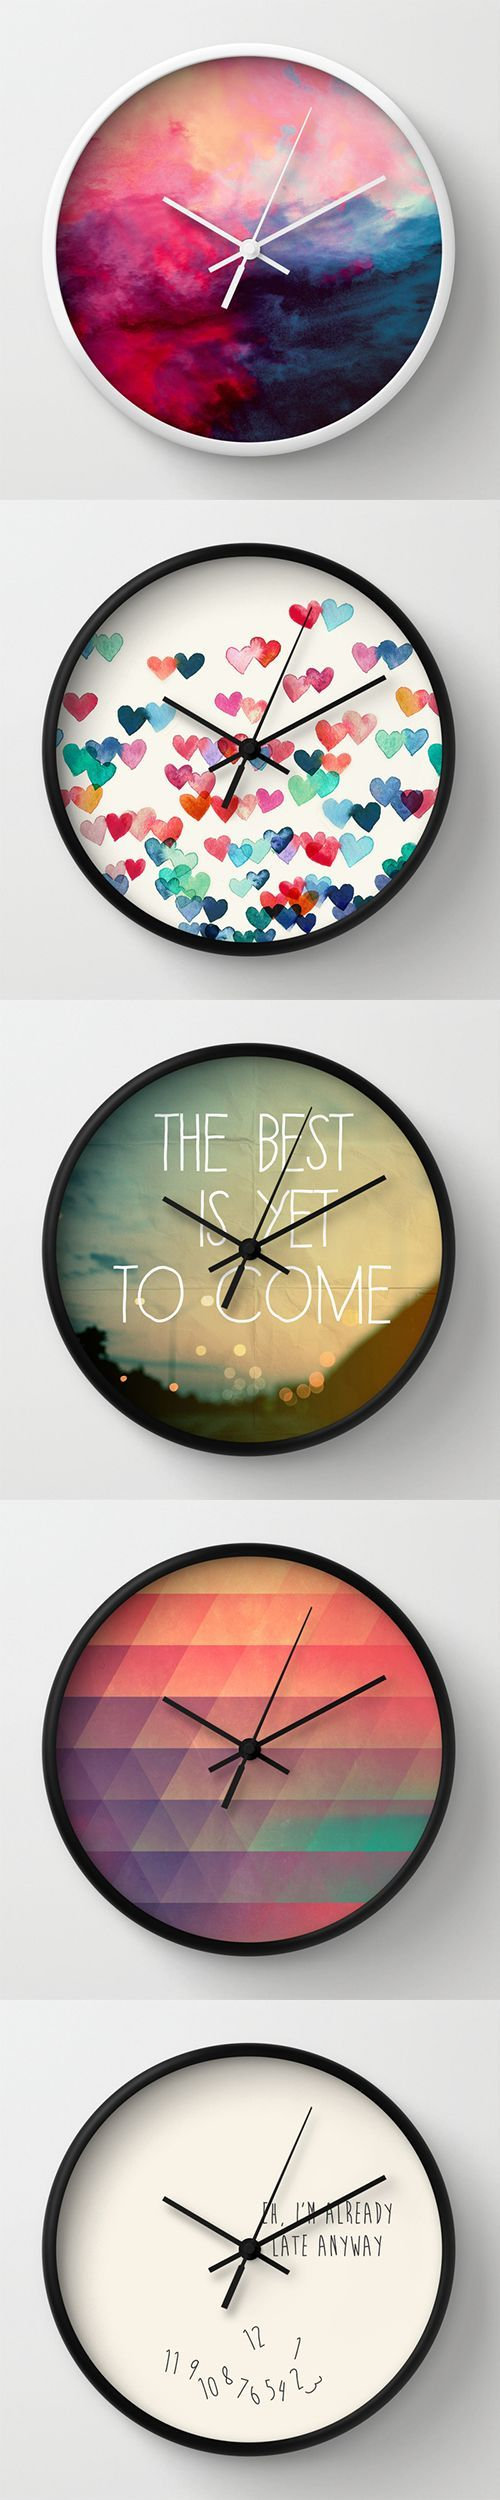 Wall Clocks and millions of other products available atSociety6.com today. Every purchase supports independent art and the artist that created it.